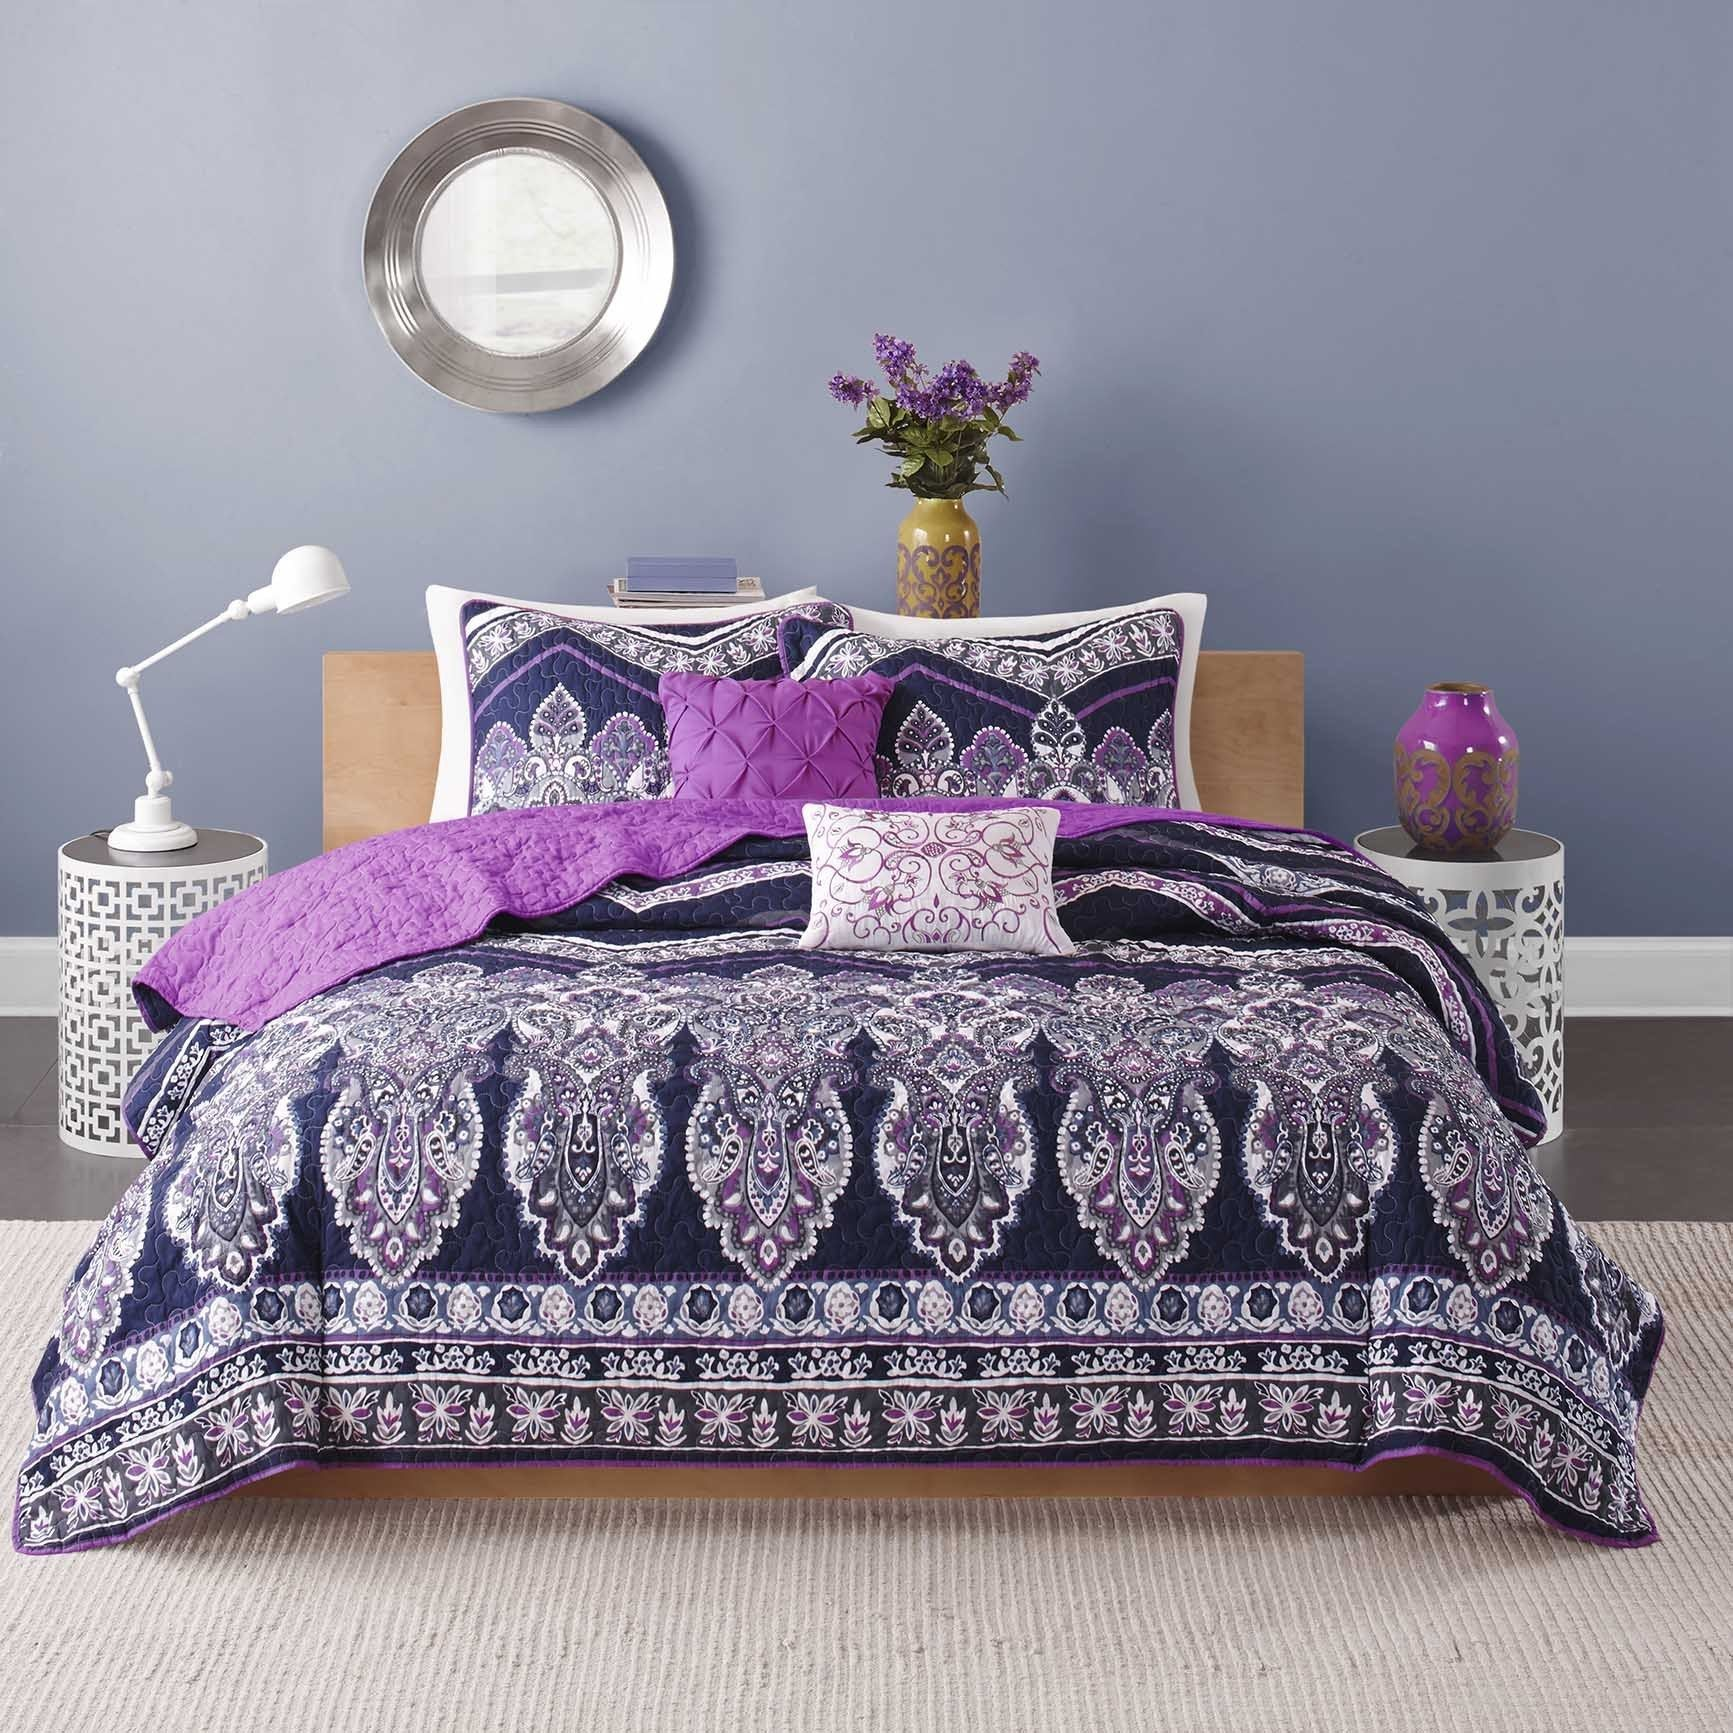 Intelligent Design Kinley 5 Piece Coverlet Set (Twintwin Xl Purple), Purple